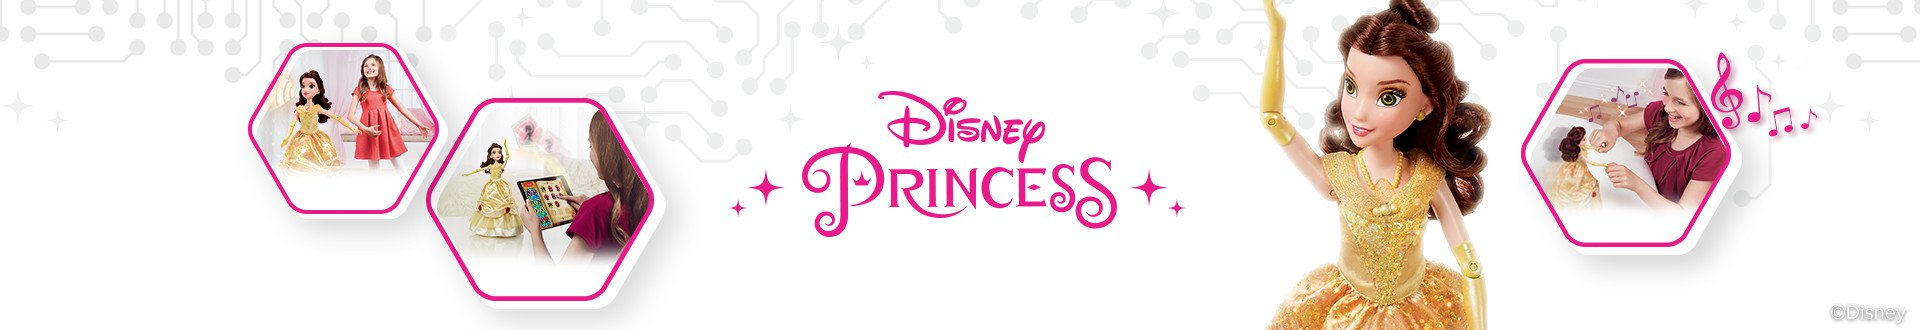 pgp_disneyprincesses